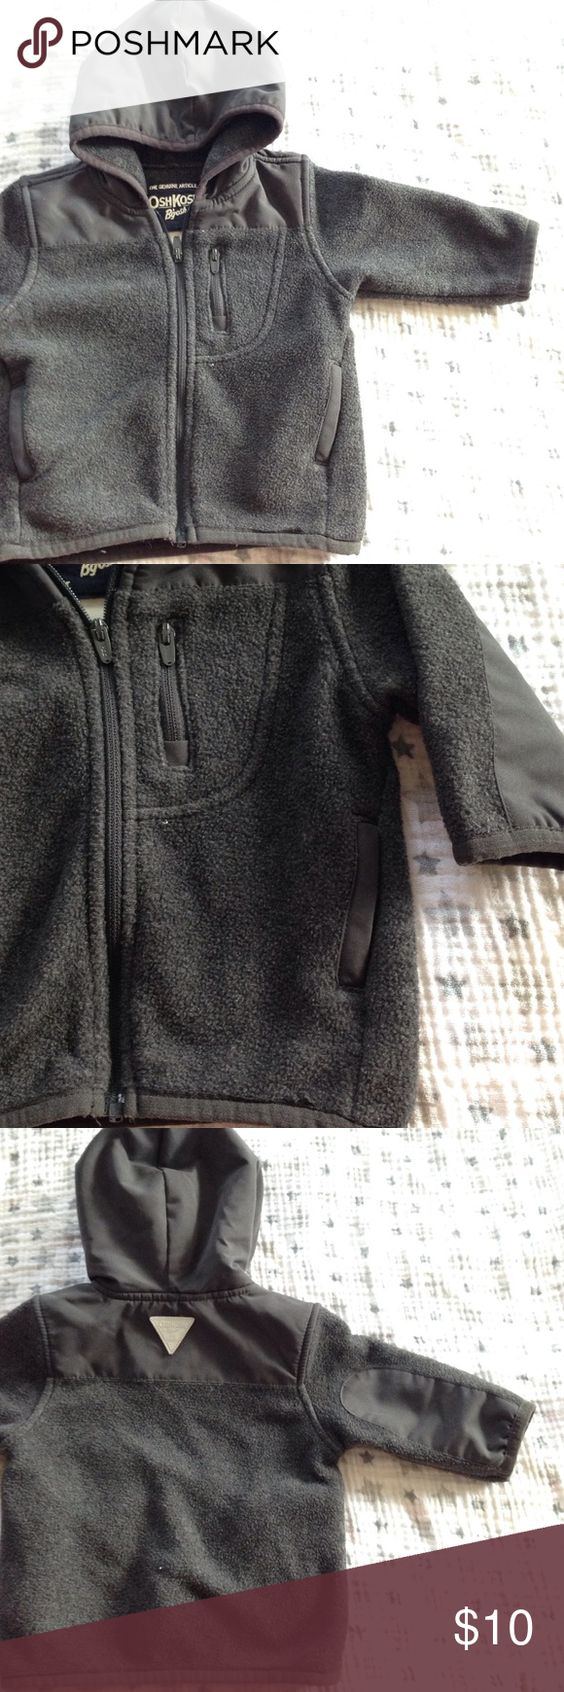 Fleece jackets, Warm and Pockets on Pinterest